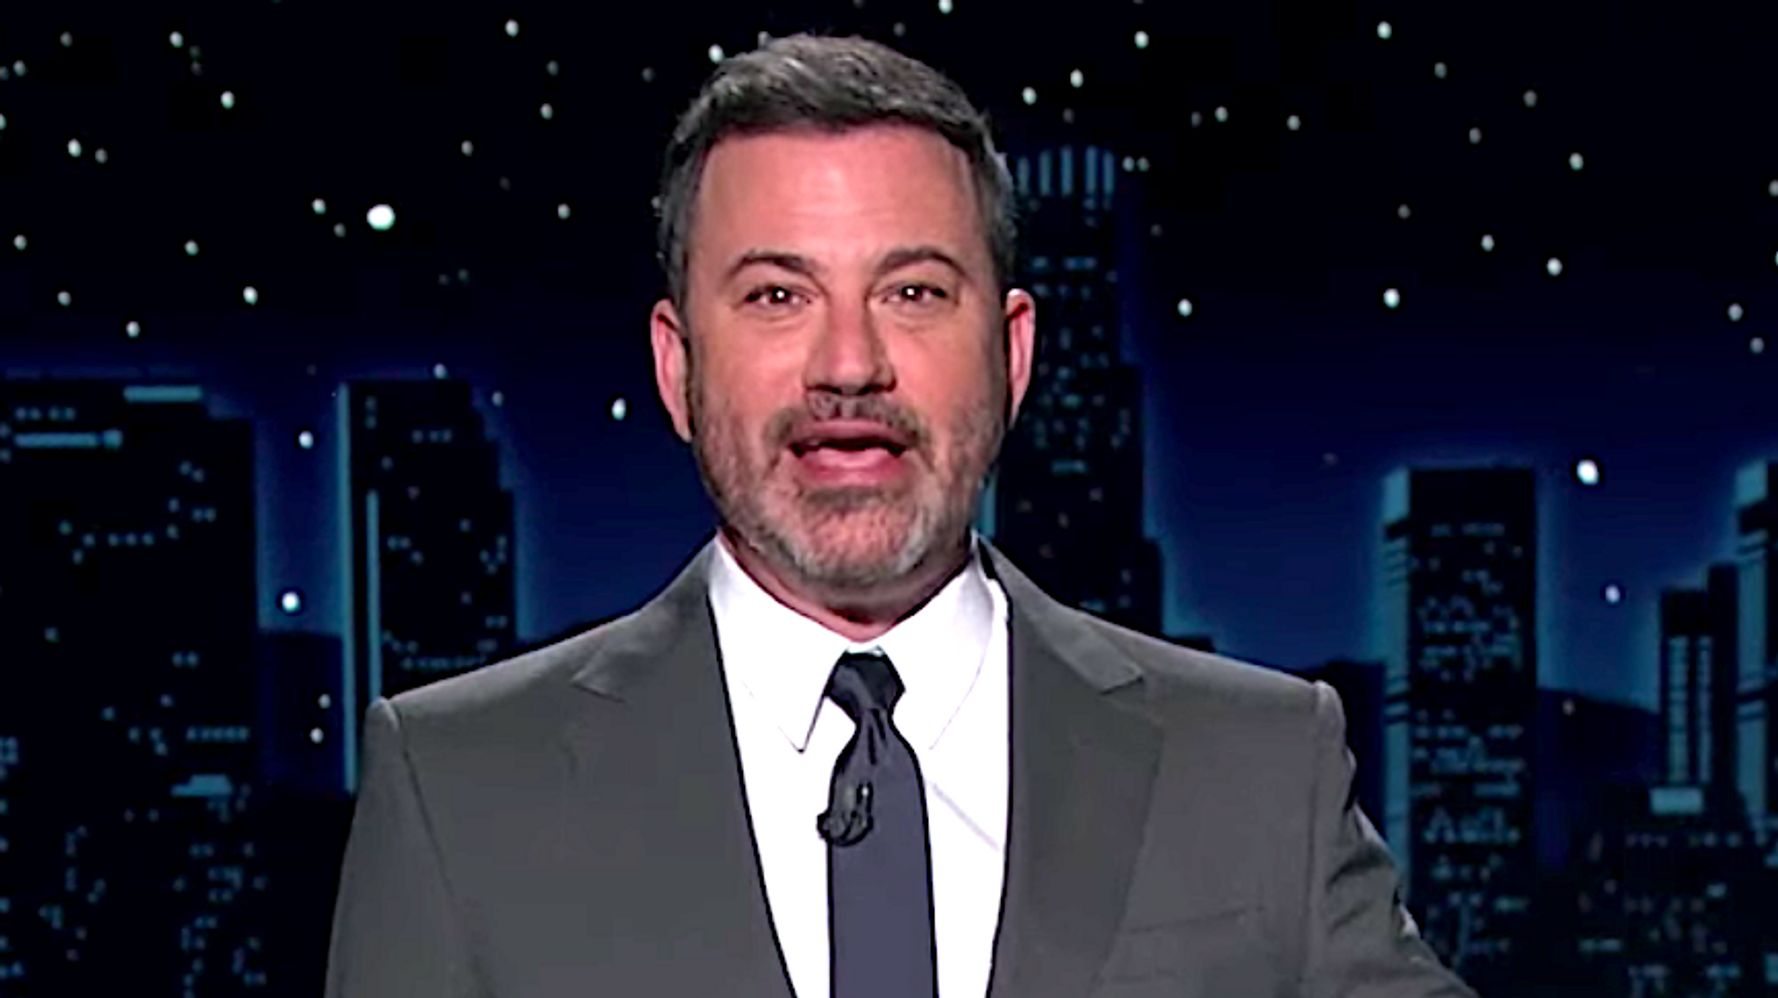 Jimmy Kimmel Burns Donald Trump's Hair Color Change With Line Of The Night